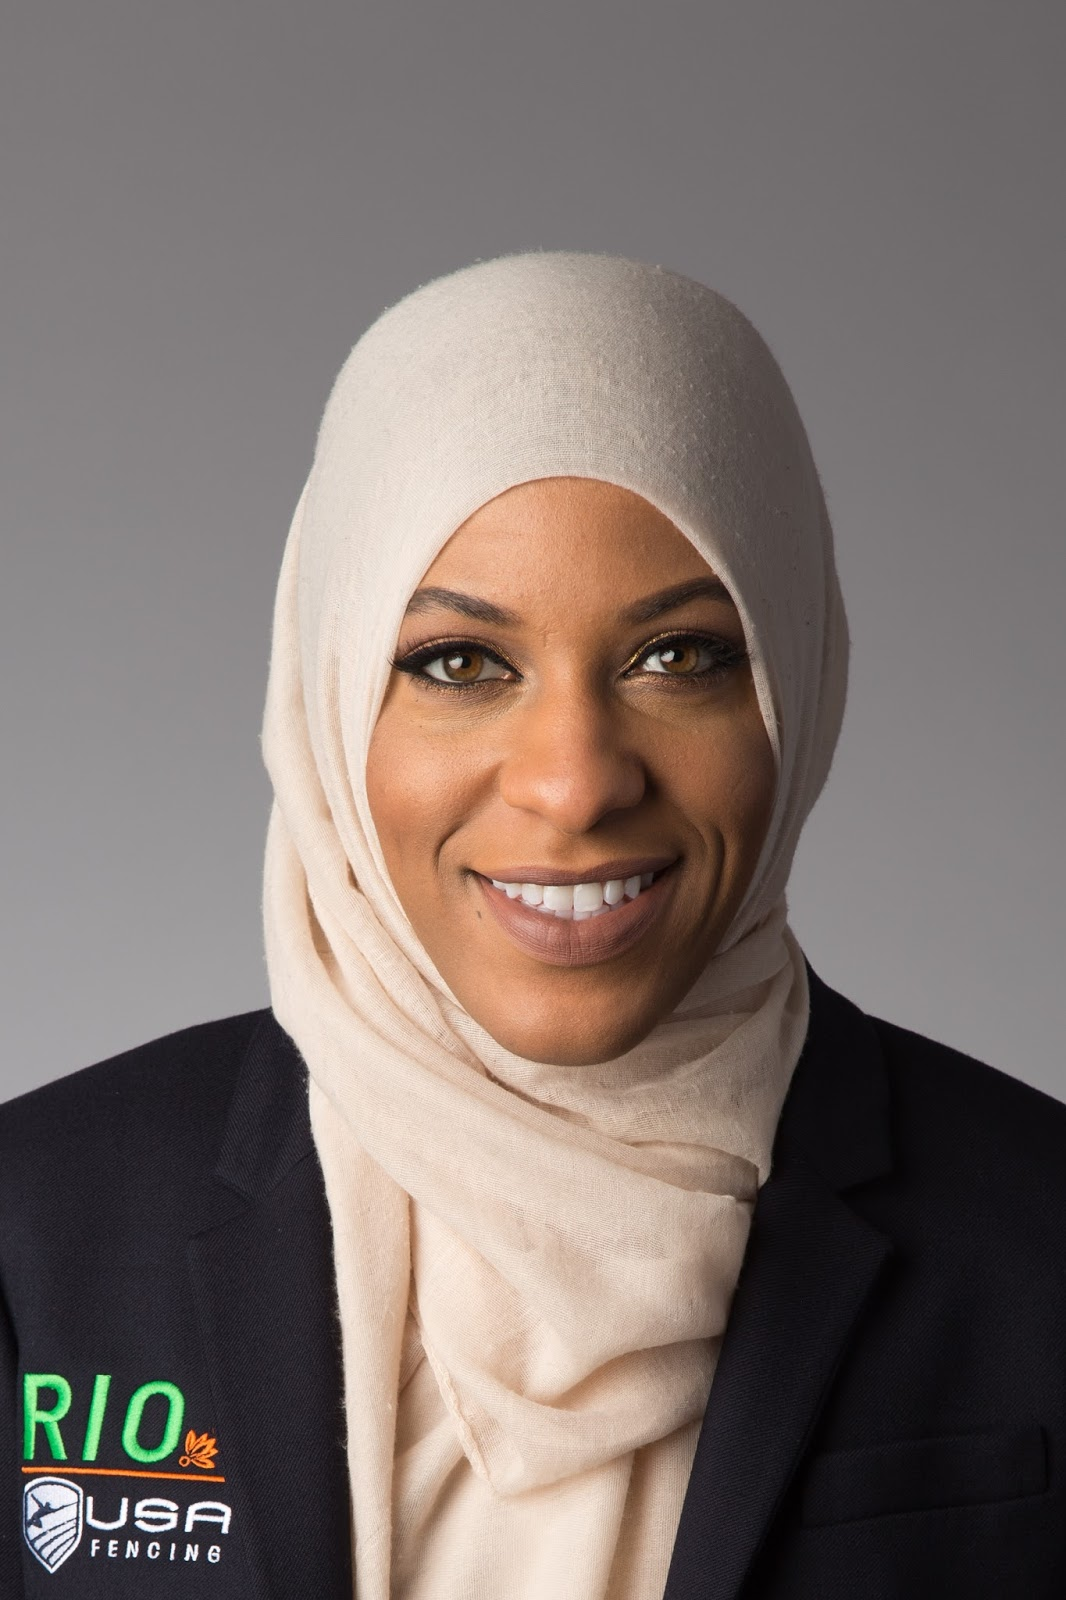 muslim single women in national city Macy's decision to sell hijabs sparks debate among muslim women every single day, of what i represent when i walk out to the streets of new york city or around.